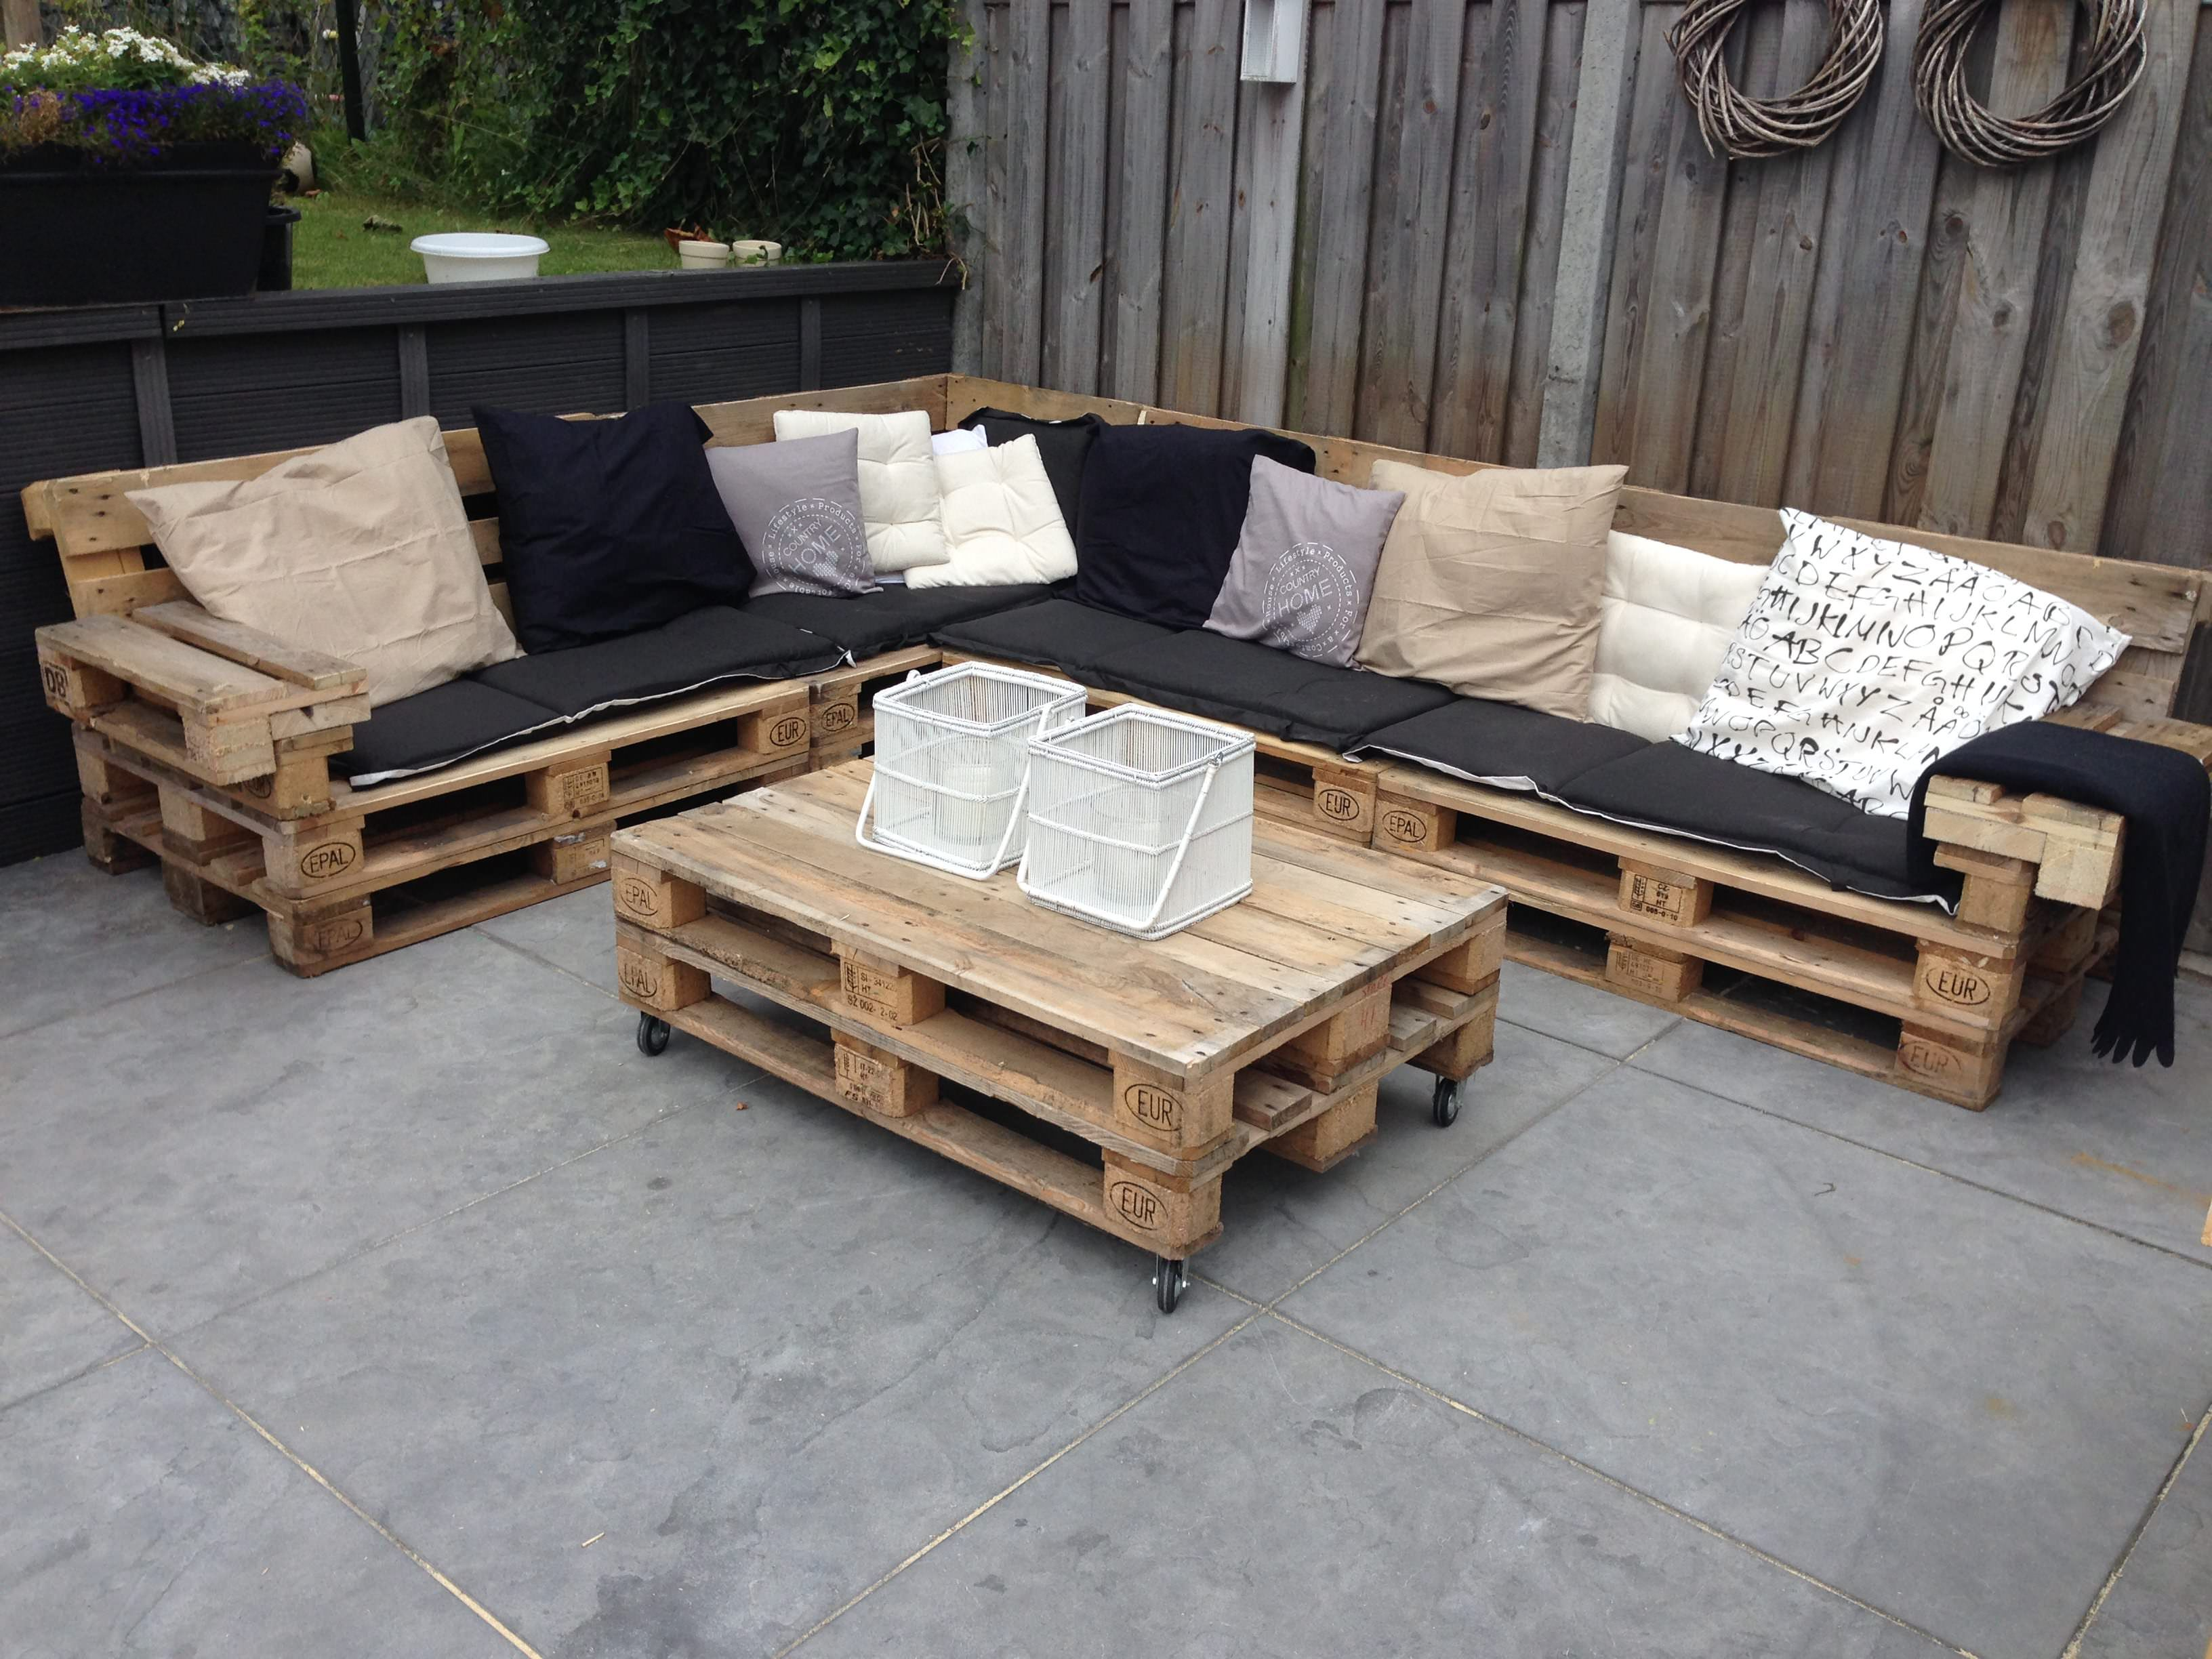 Complete Lounge Set Made Out Of Reclaimed EURO Pallets.